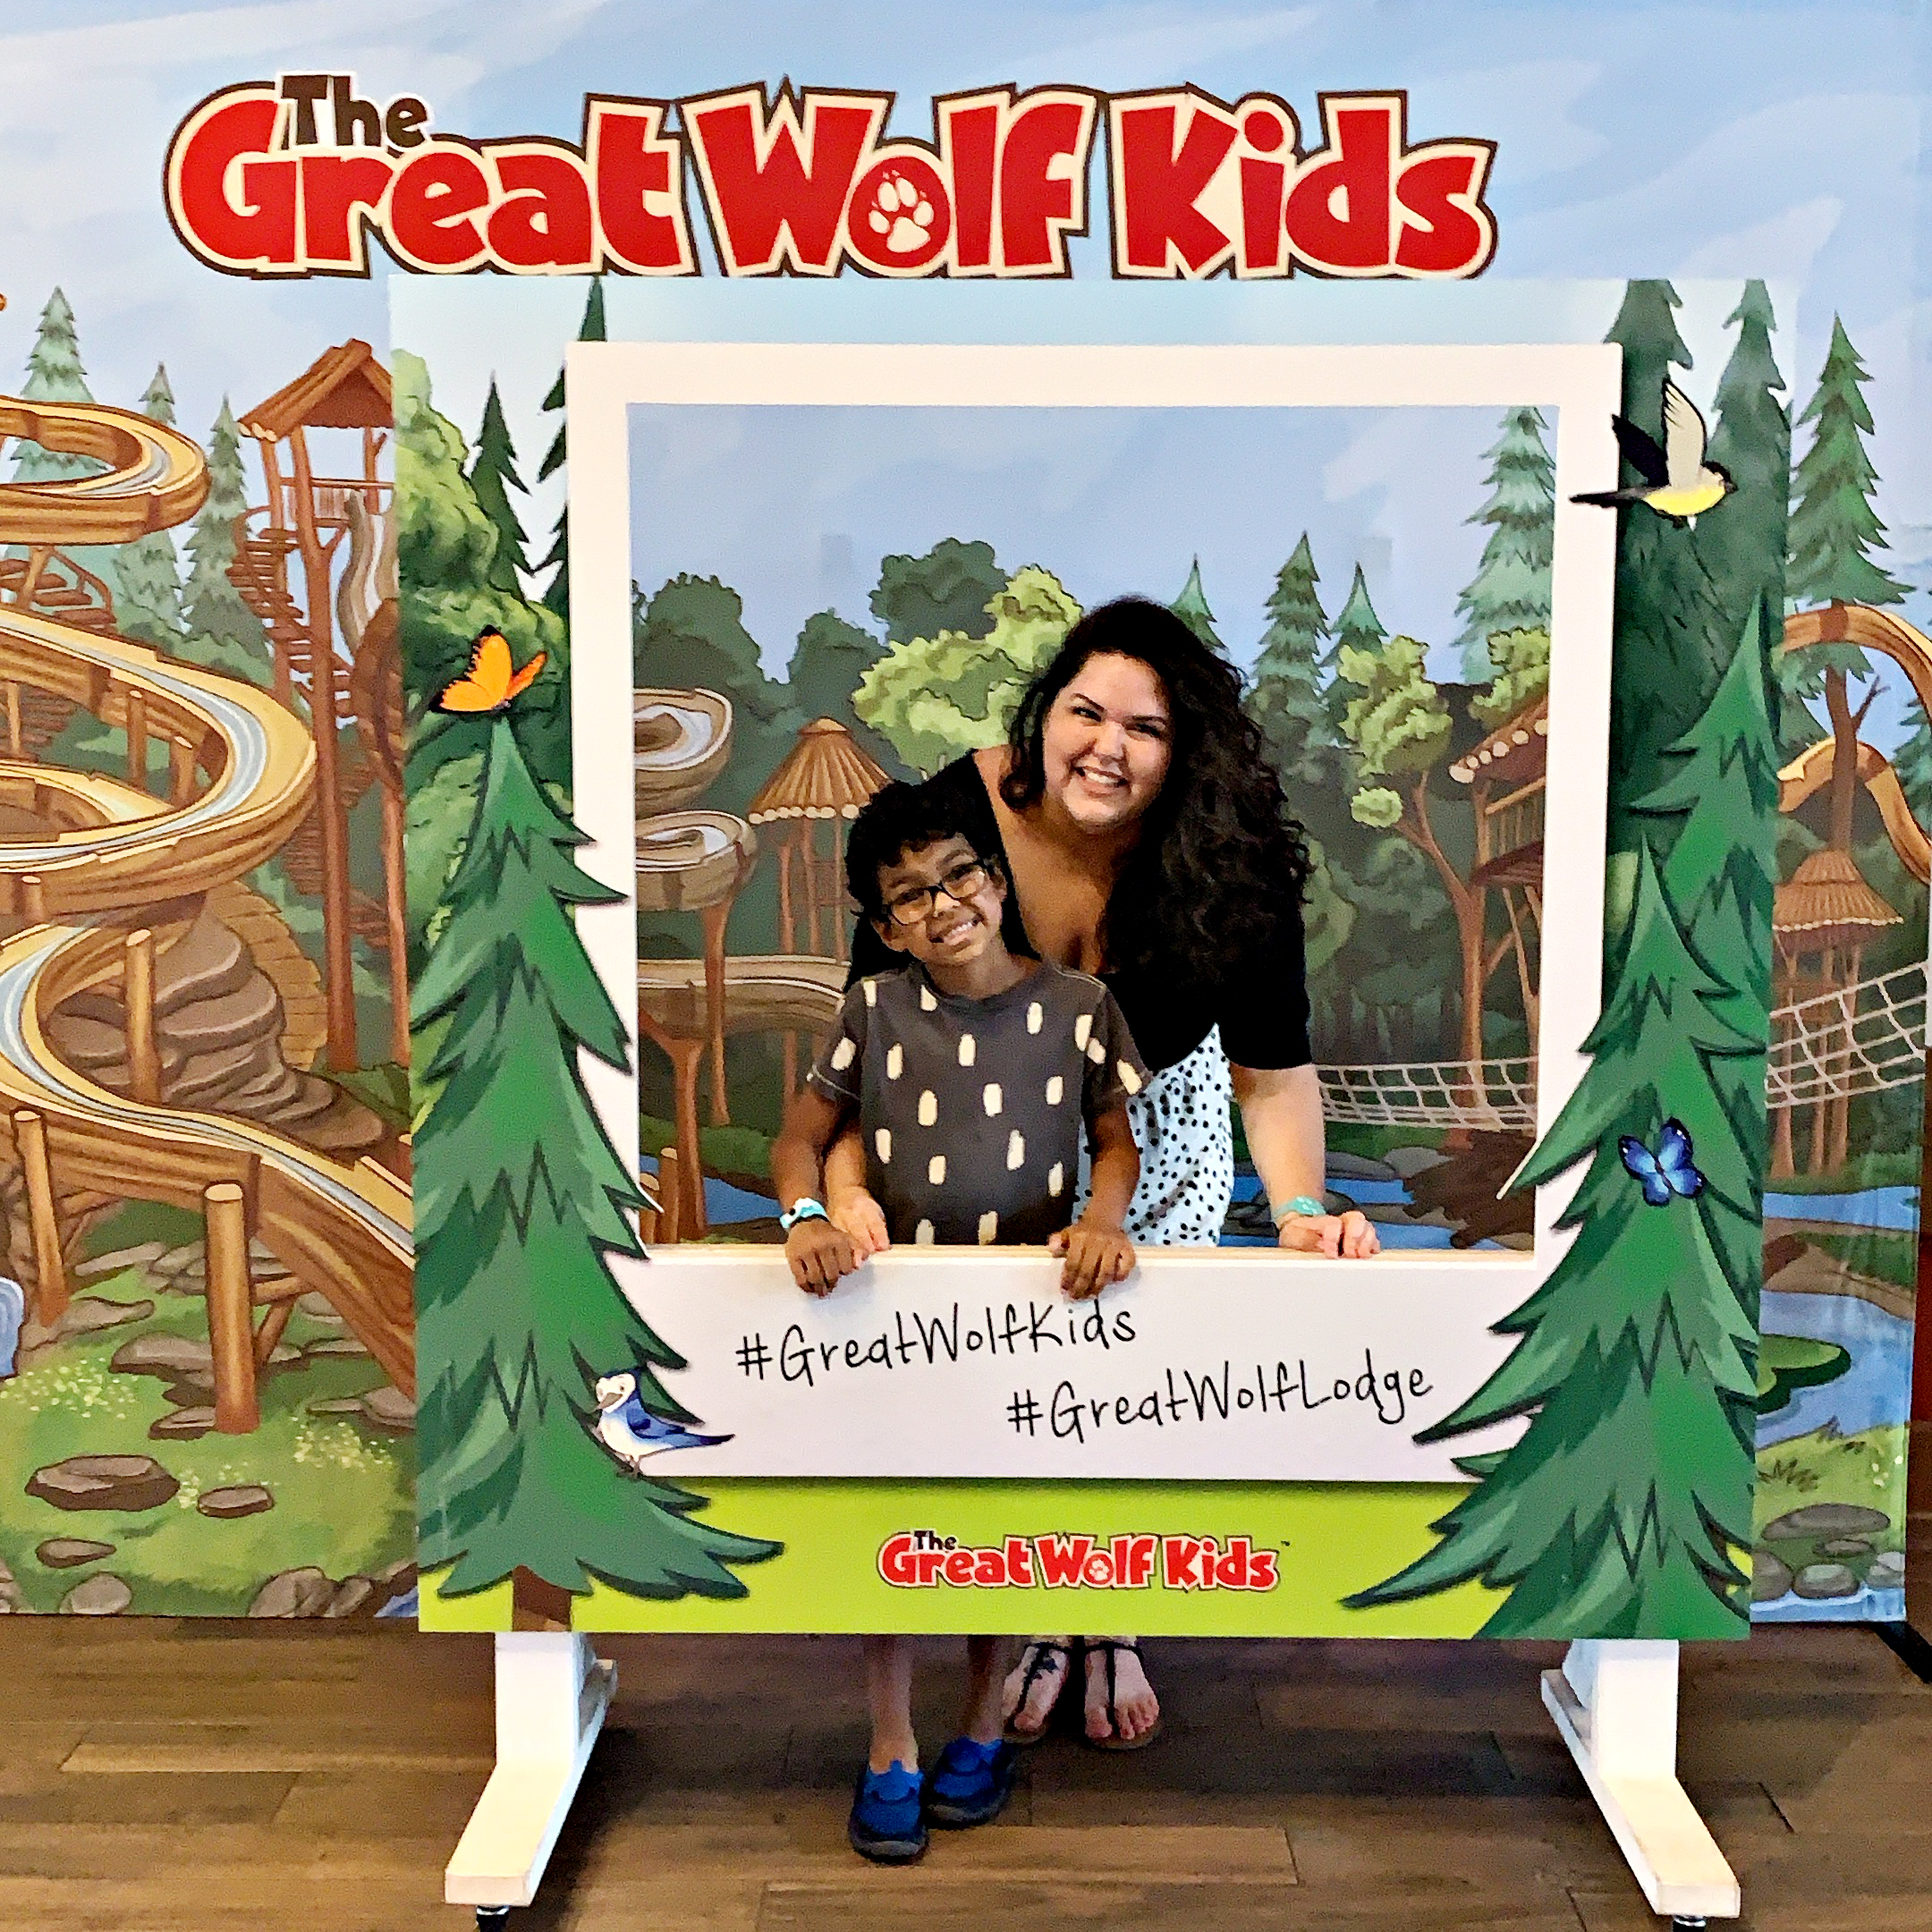 Mom and son at Great Wolf Lodge in Atlanta/LaGrange, posing in the Great Wolf Kids polaroid photobooth op.